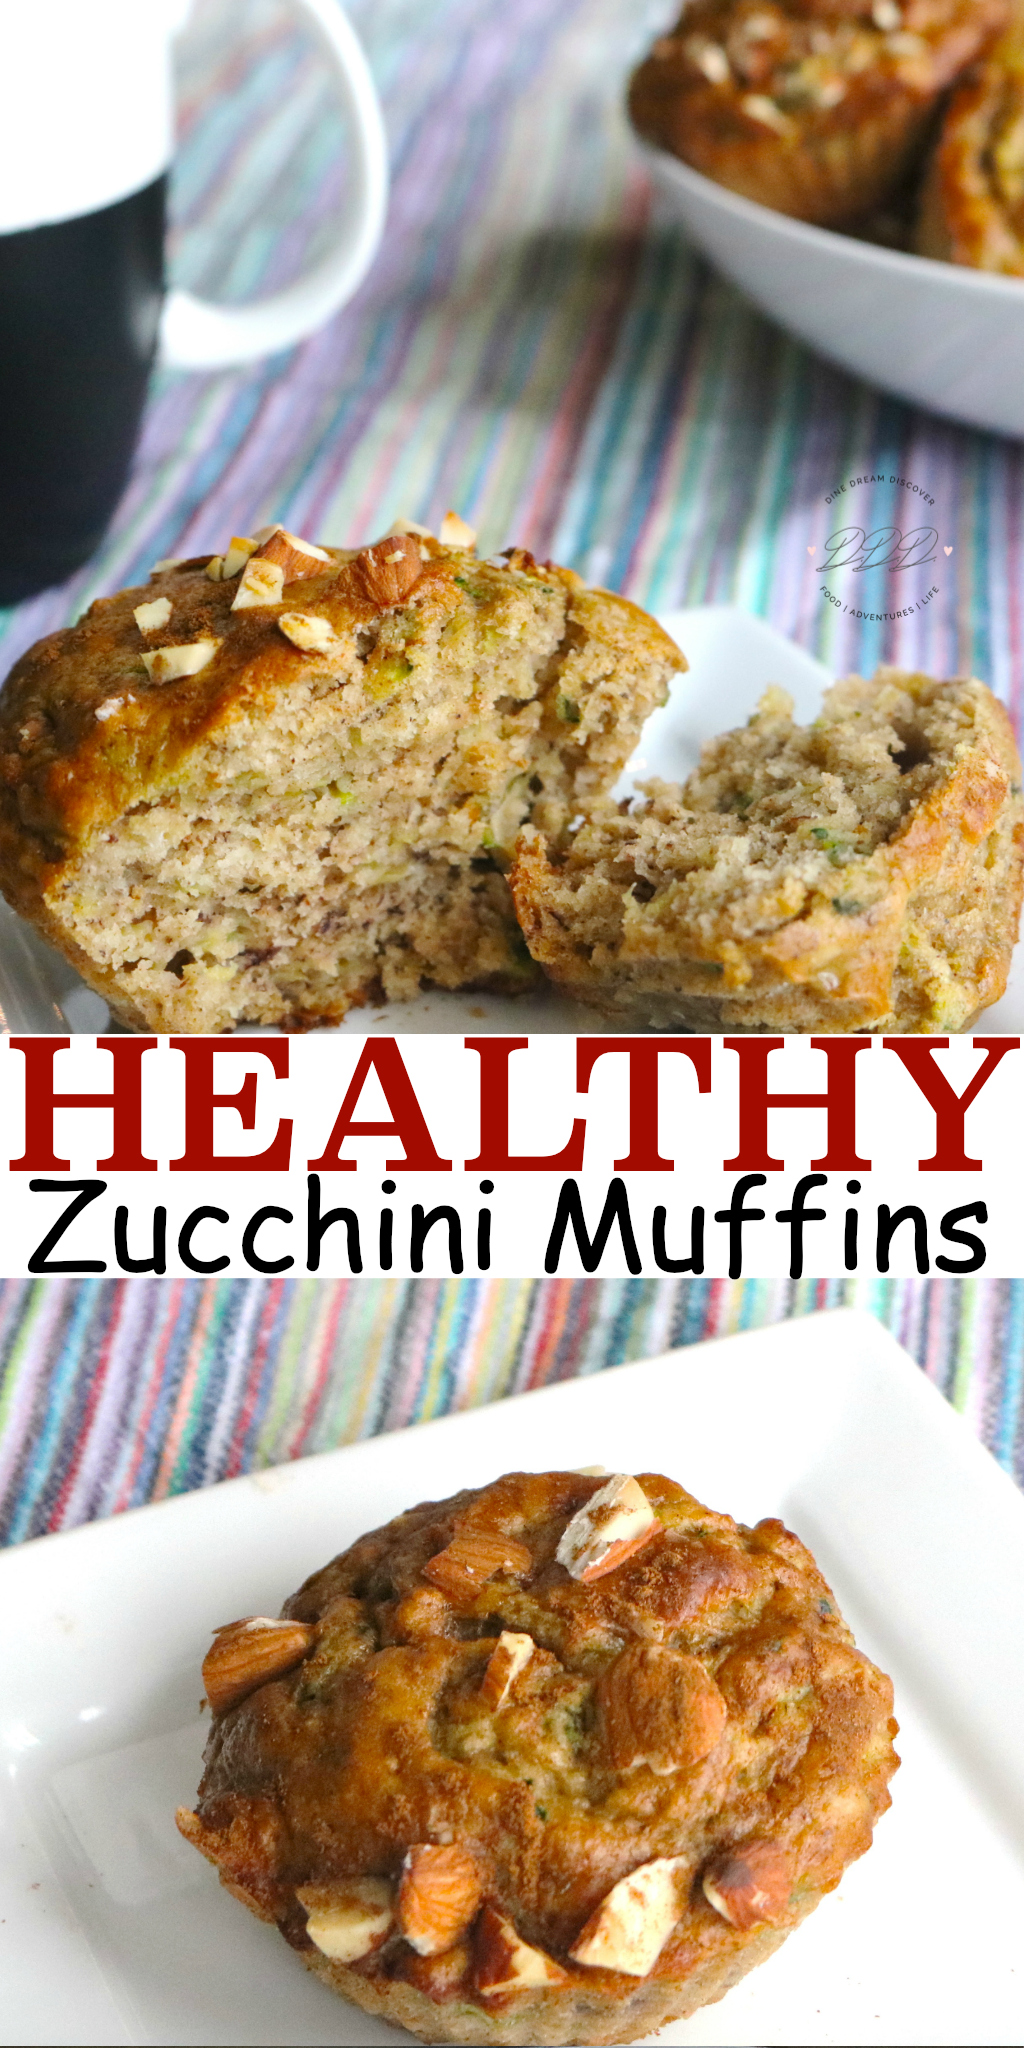 The Almond Banana Zucchini Muffins are healthy zucchini muffins made with almond meal which is similar to almond flour. These savory zucchini muffins are perfect for a grab-n-go breakfast.